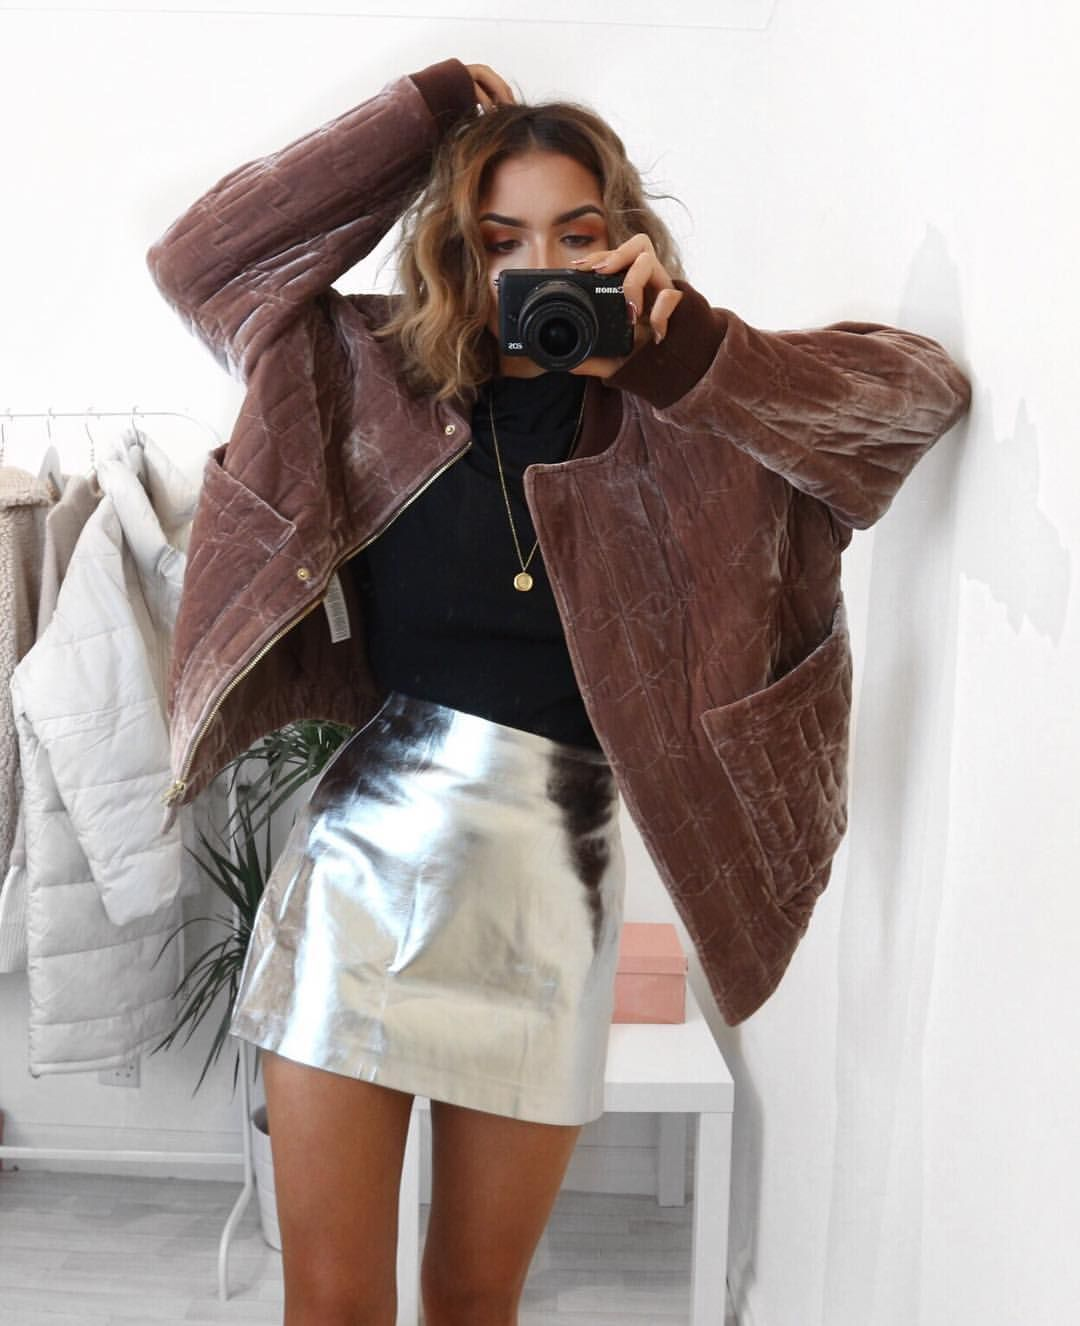 0db0484a48 Mix textures for a luxe holiday outfit, like this high shine metallic  miniskirt and fuzzy faux fur jacket